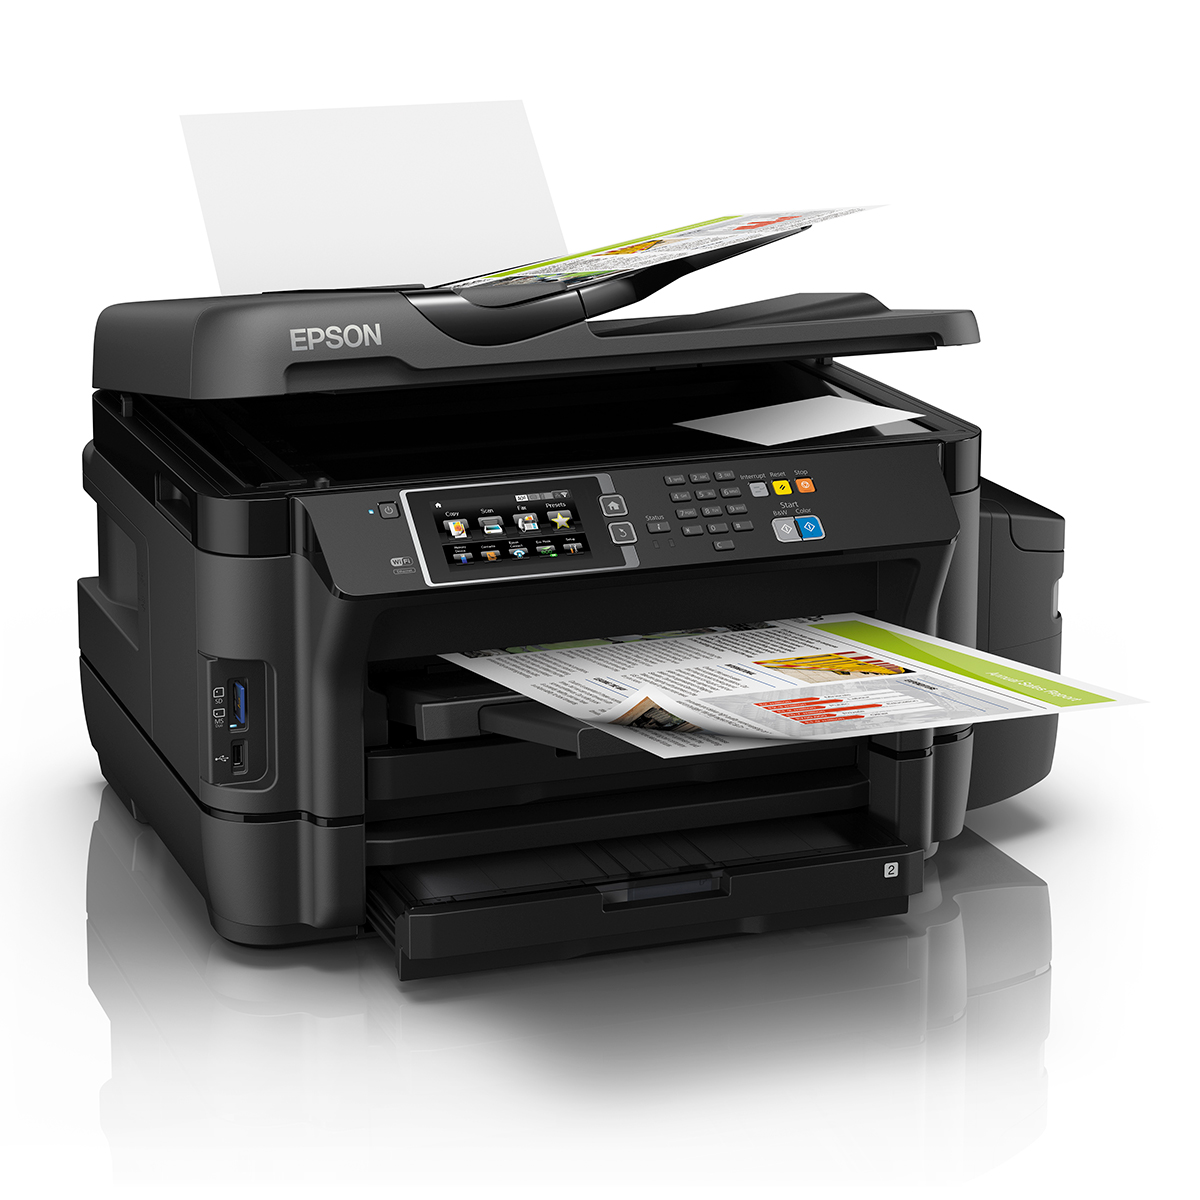 Epson EcoTank ET-16500 A3 Colour Inkjet Multifunction